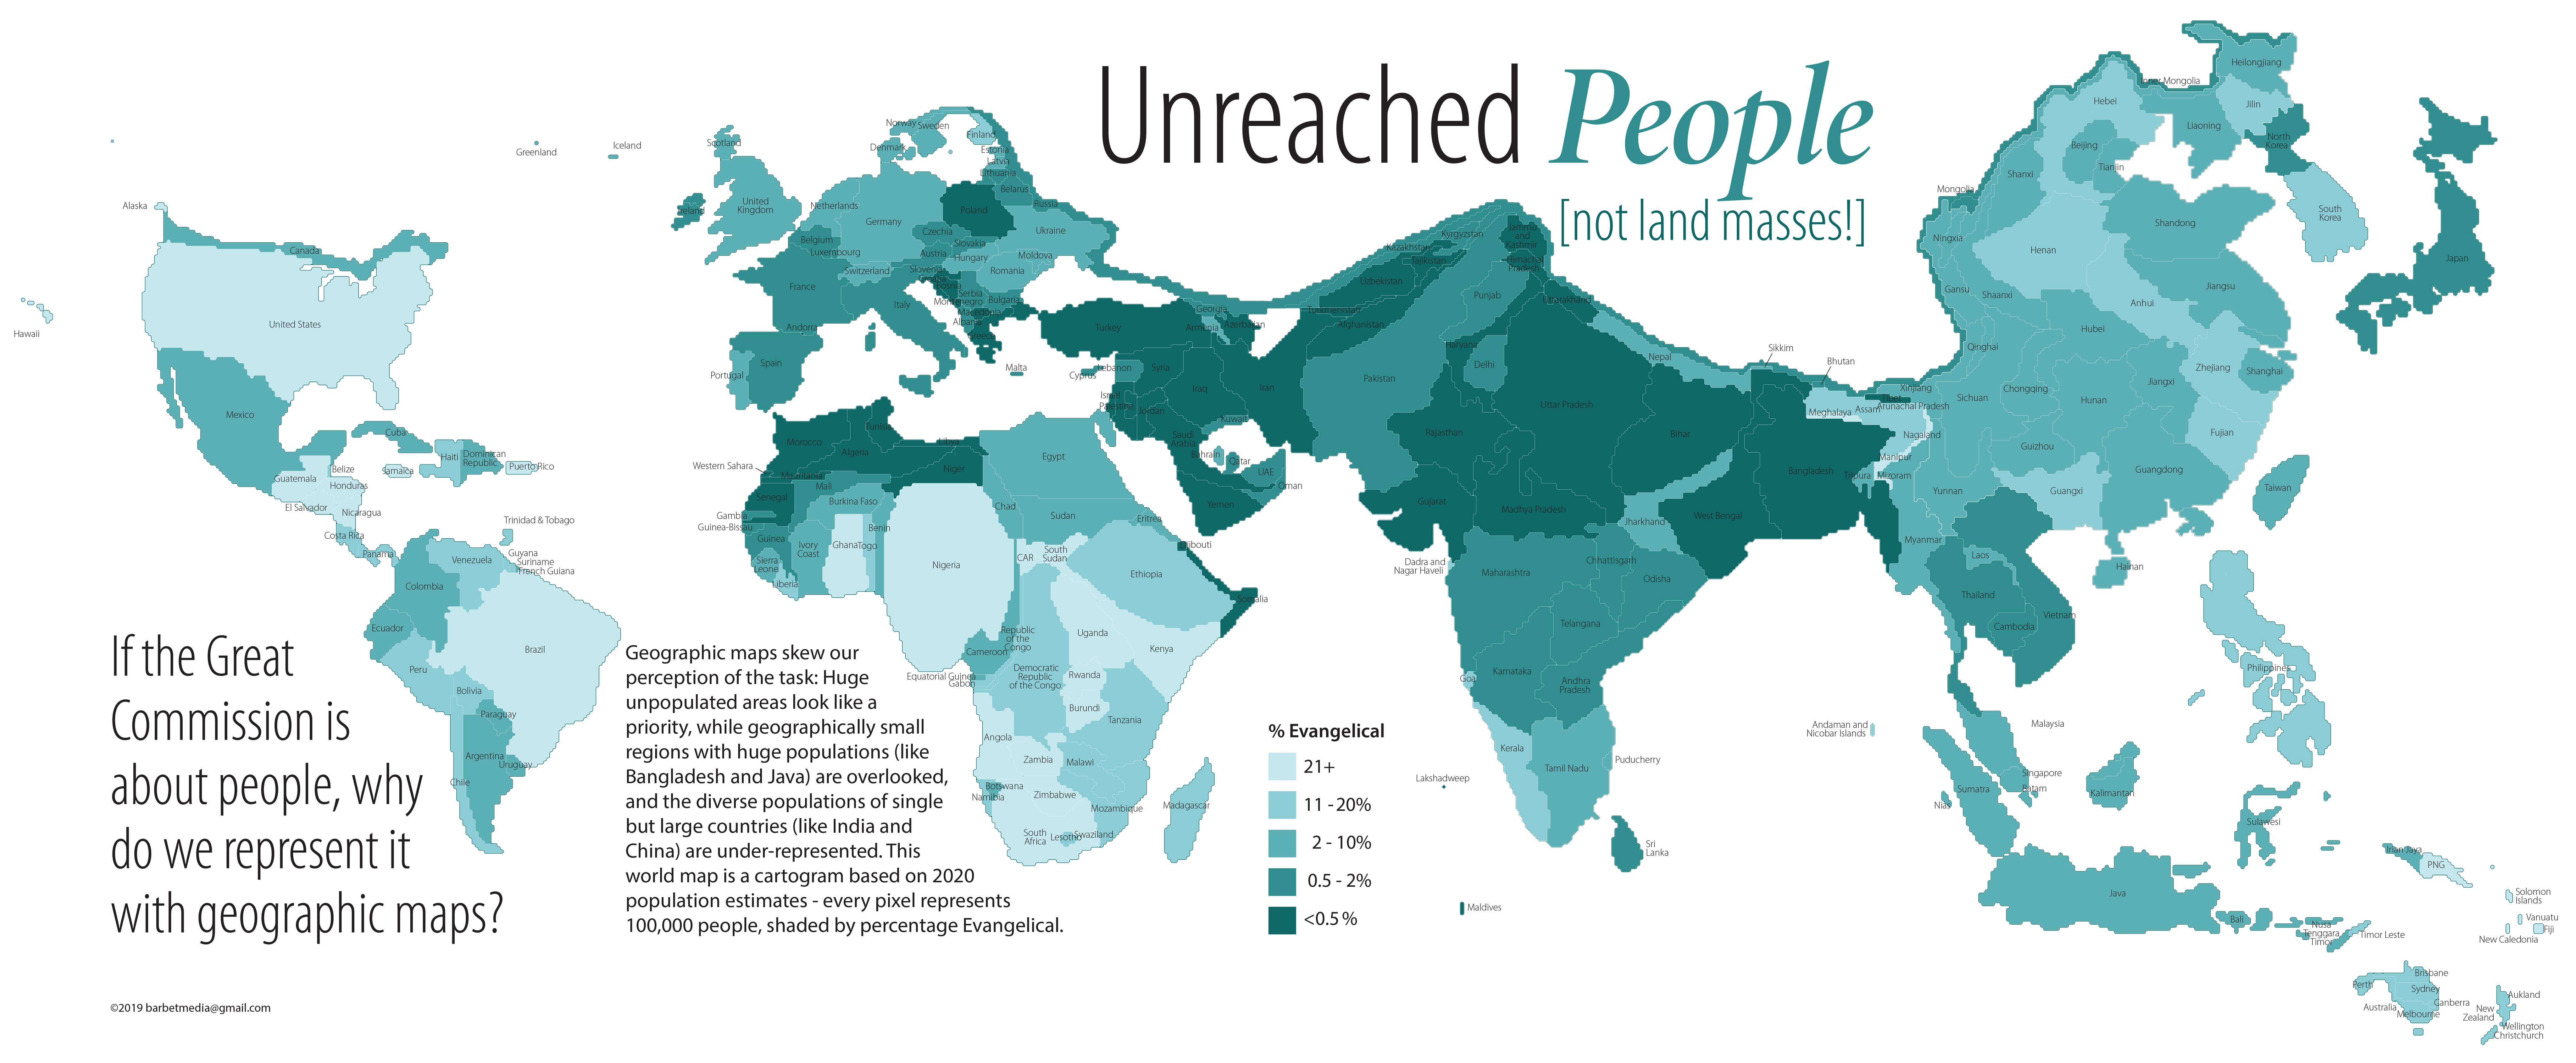 Unreached People (not land masses!)